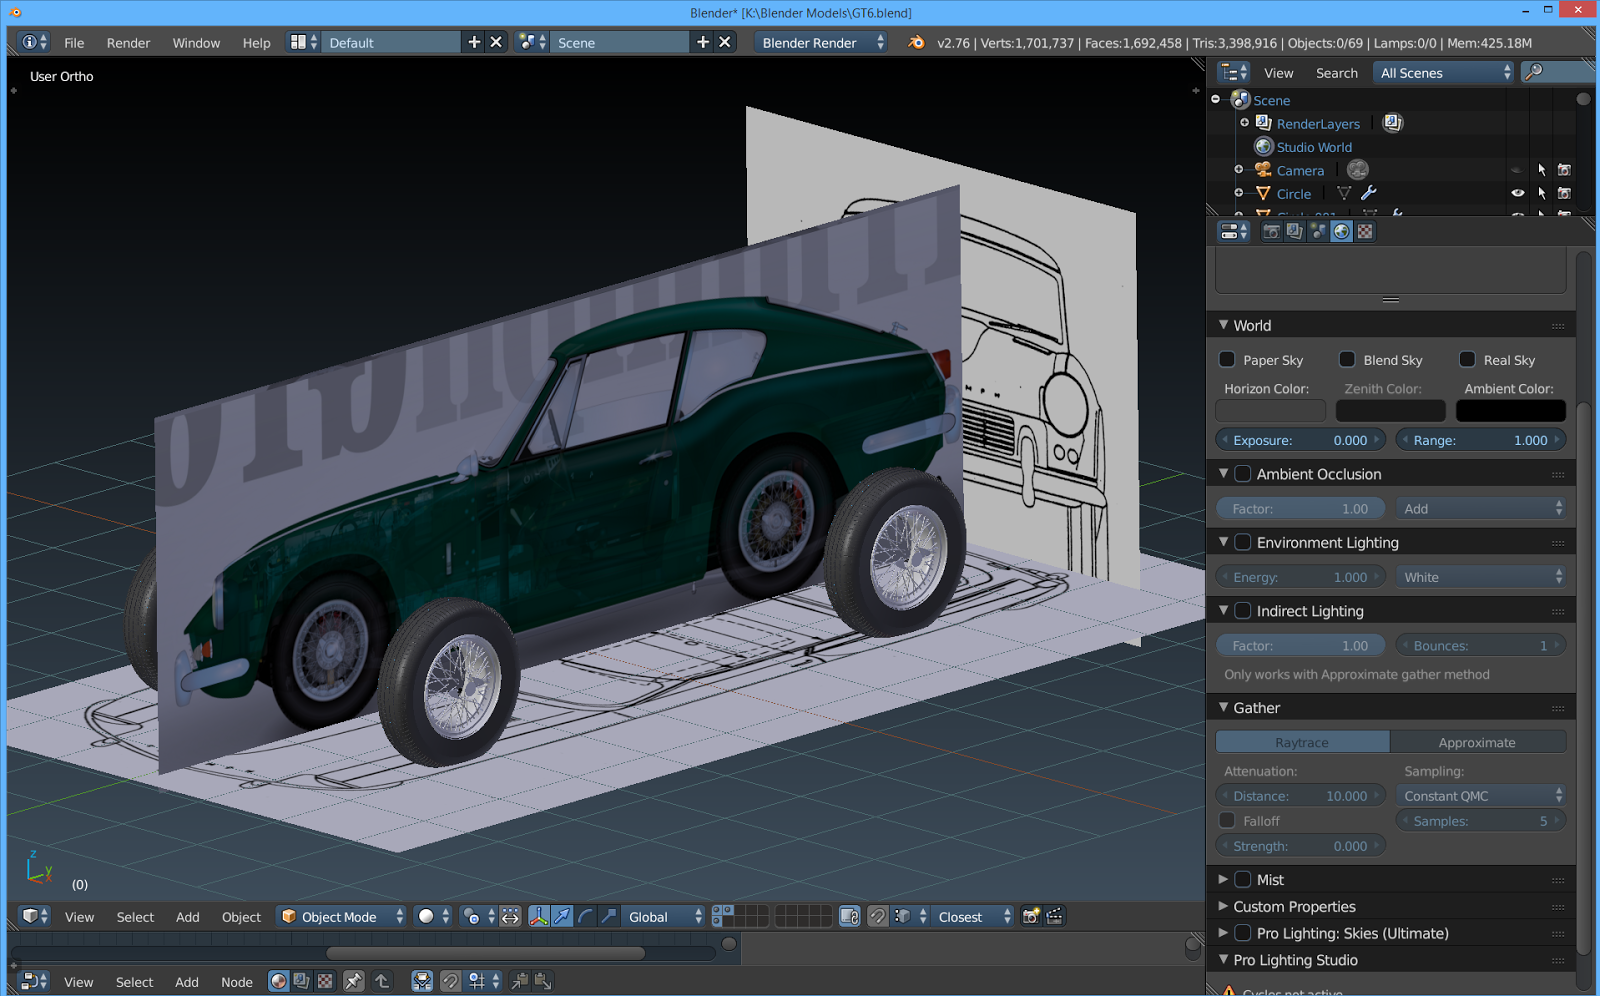 The tinkers workshop blender 3d 1967 triumph gt6 project i then put the blueprint along with the colored broadside view of the car into blender and aligned them so i could get an accurate layout to set up the body malvernweather Gallery